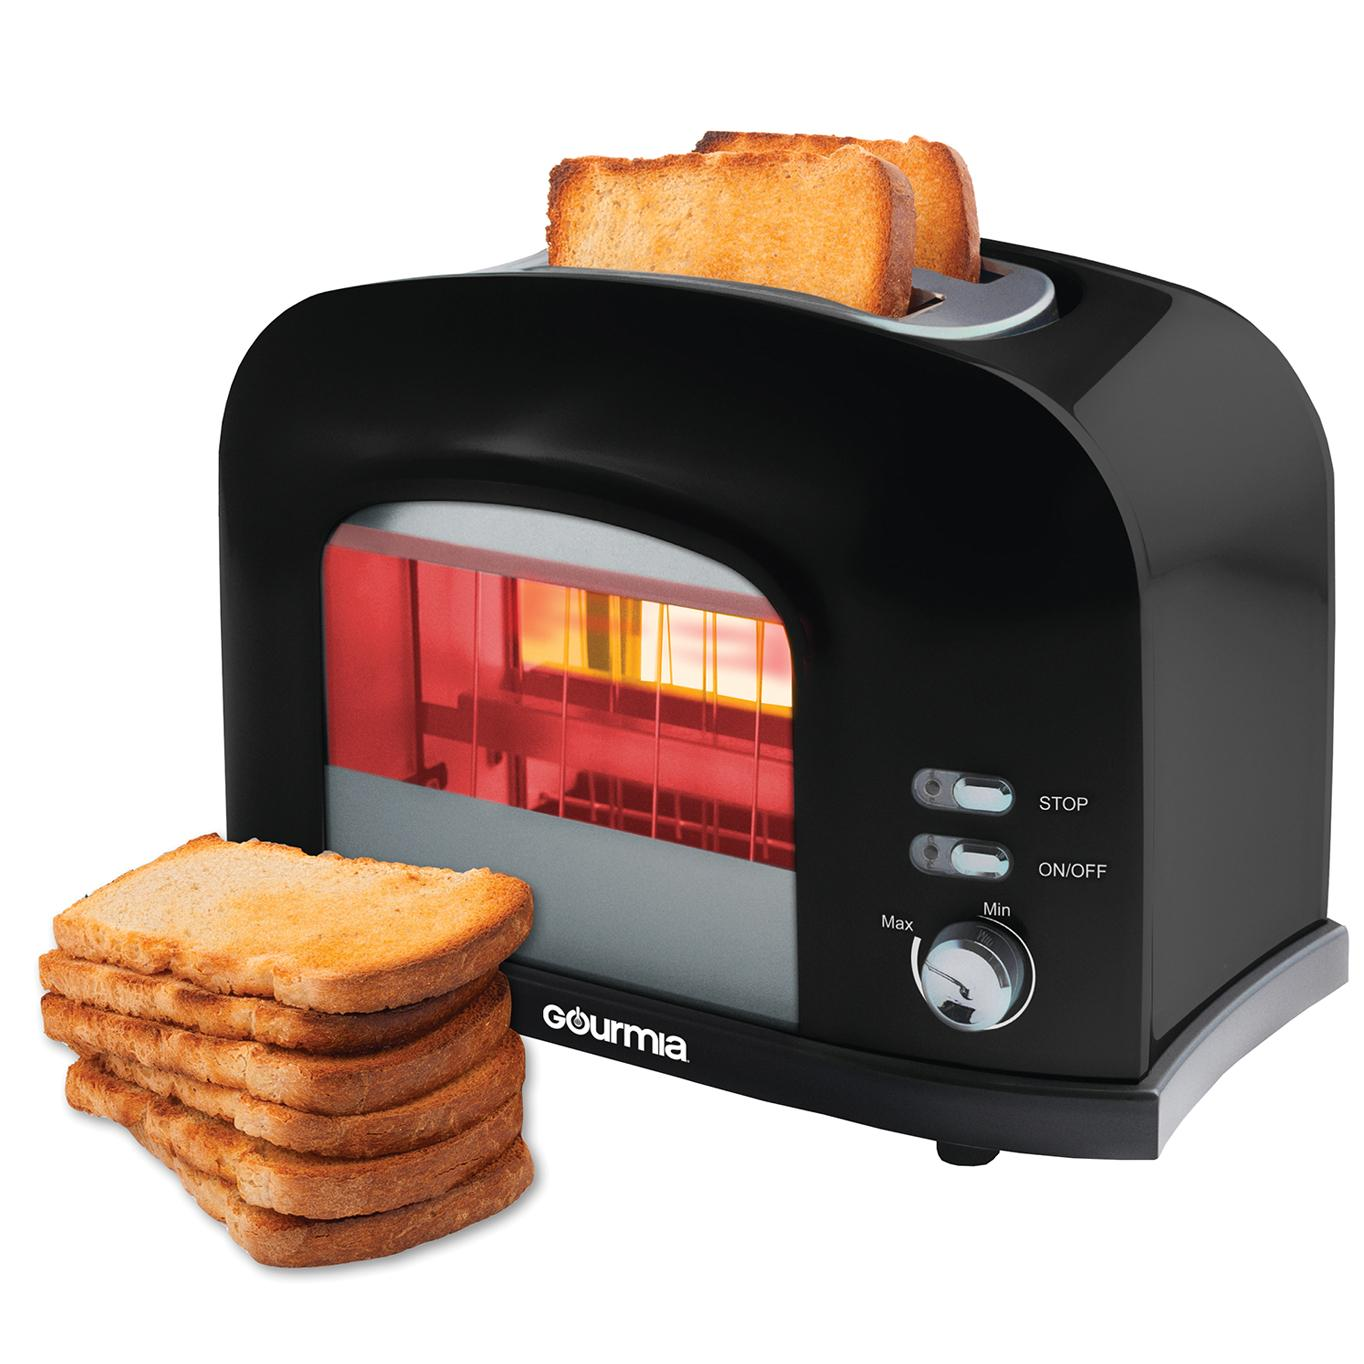 gourmia gwt230 2 slice motorized toaster. Black Bedroom Furniture Sets. Home Design Ideas